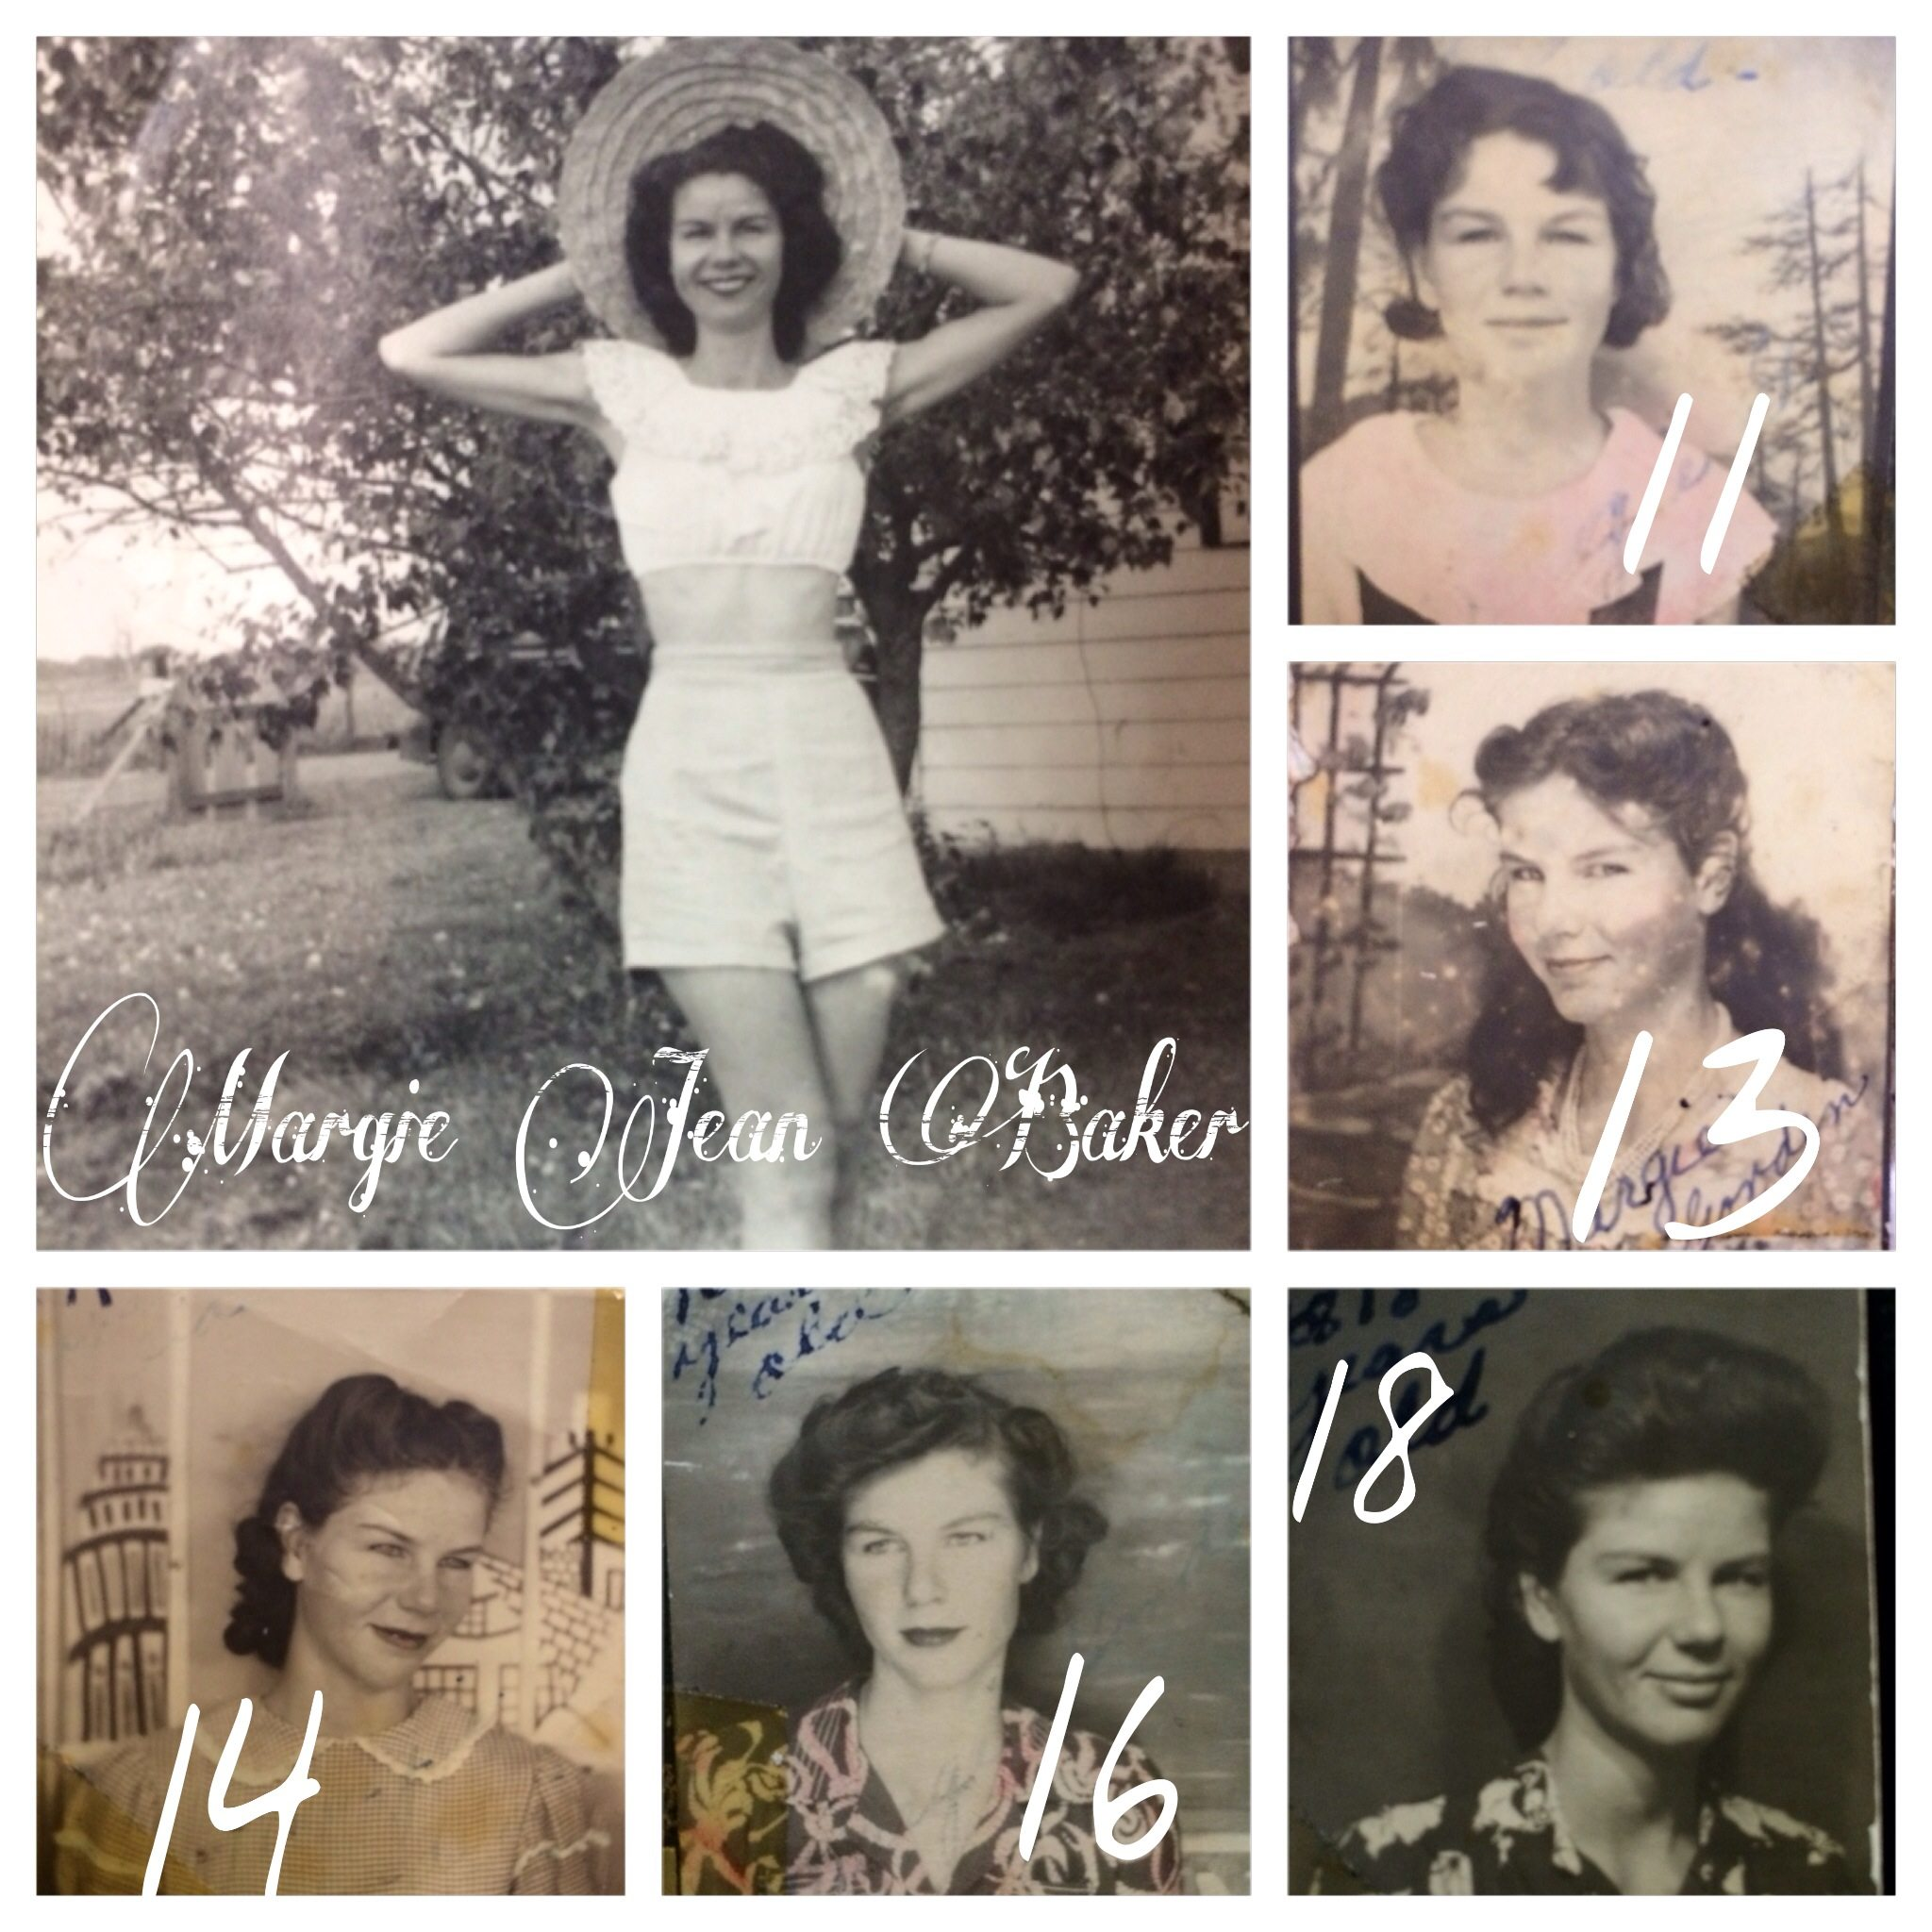 Grandma Margie was great at documenting photos. I love seeing her at different ages in her youth. She was married at 17 and had her first child when she was 19